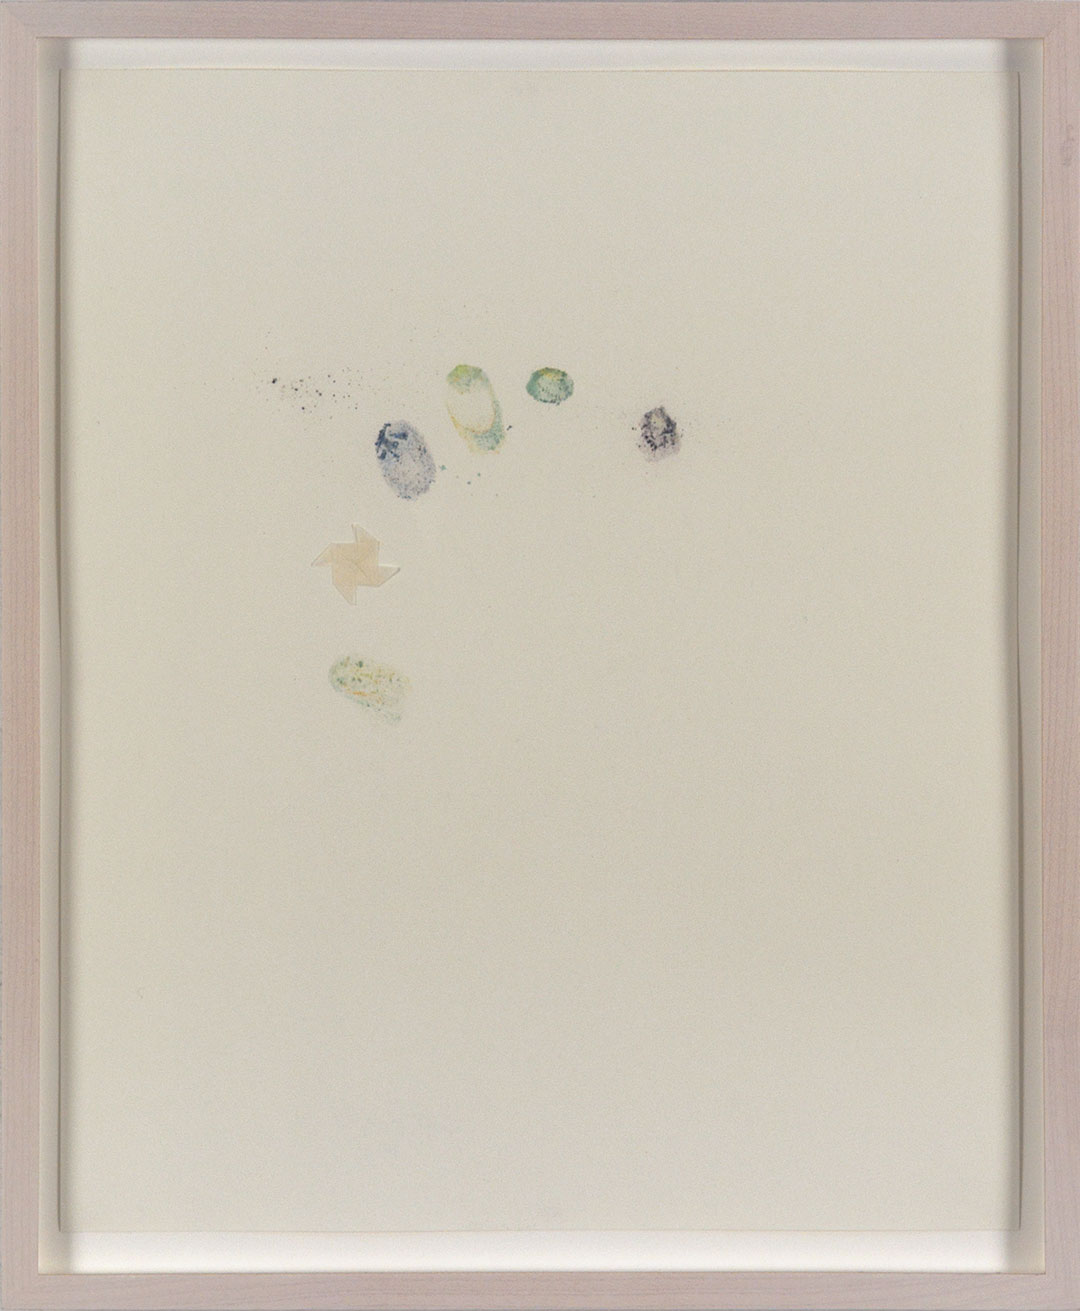 """Self 10, 2005, dry pastel pigment and tracing paper on Strathmore paper. Framed 12.25 x H15"""" x D0.5""""."""